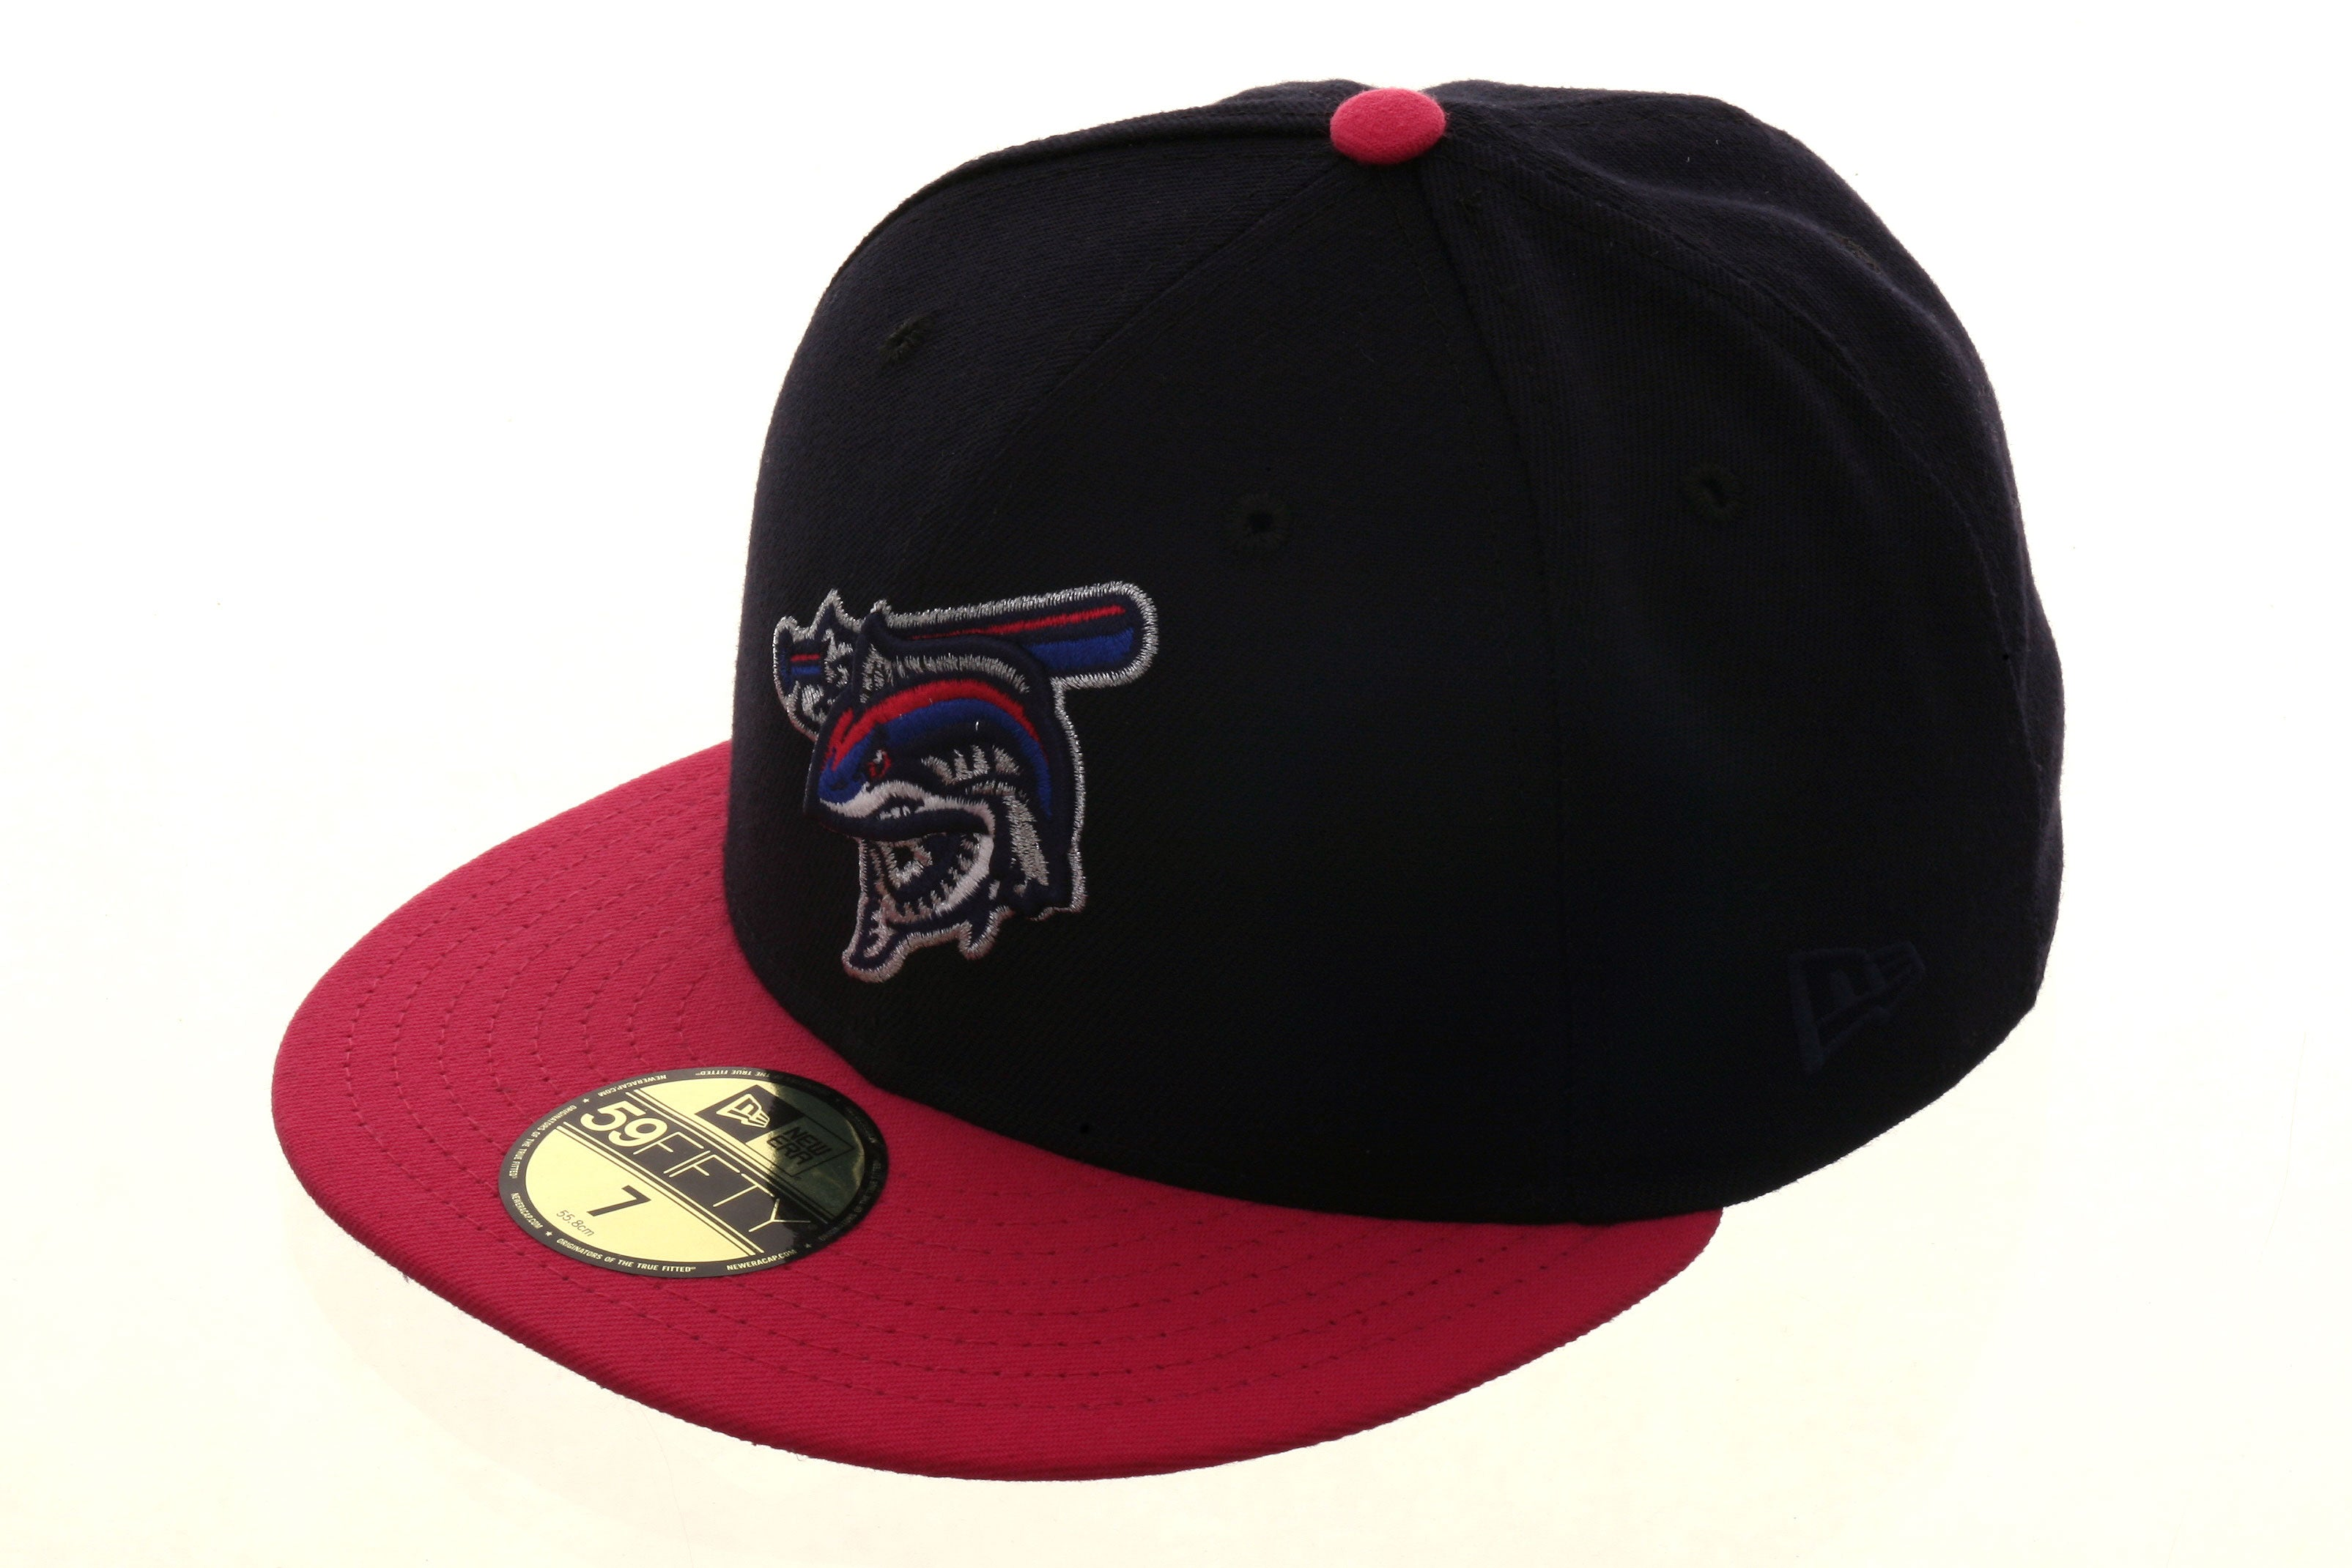 Exclusive New Era 59Fifty Pensacola Wahoos Hat - 2T Navy, Pink